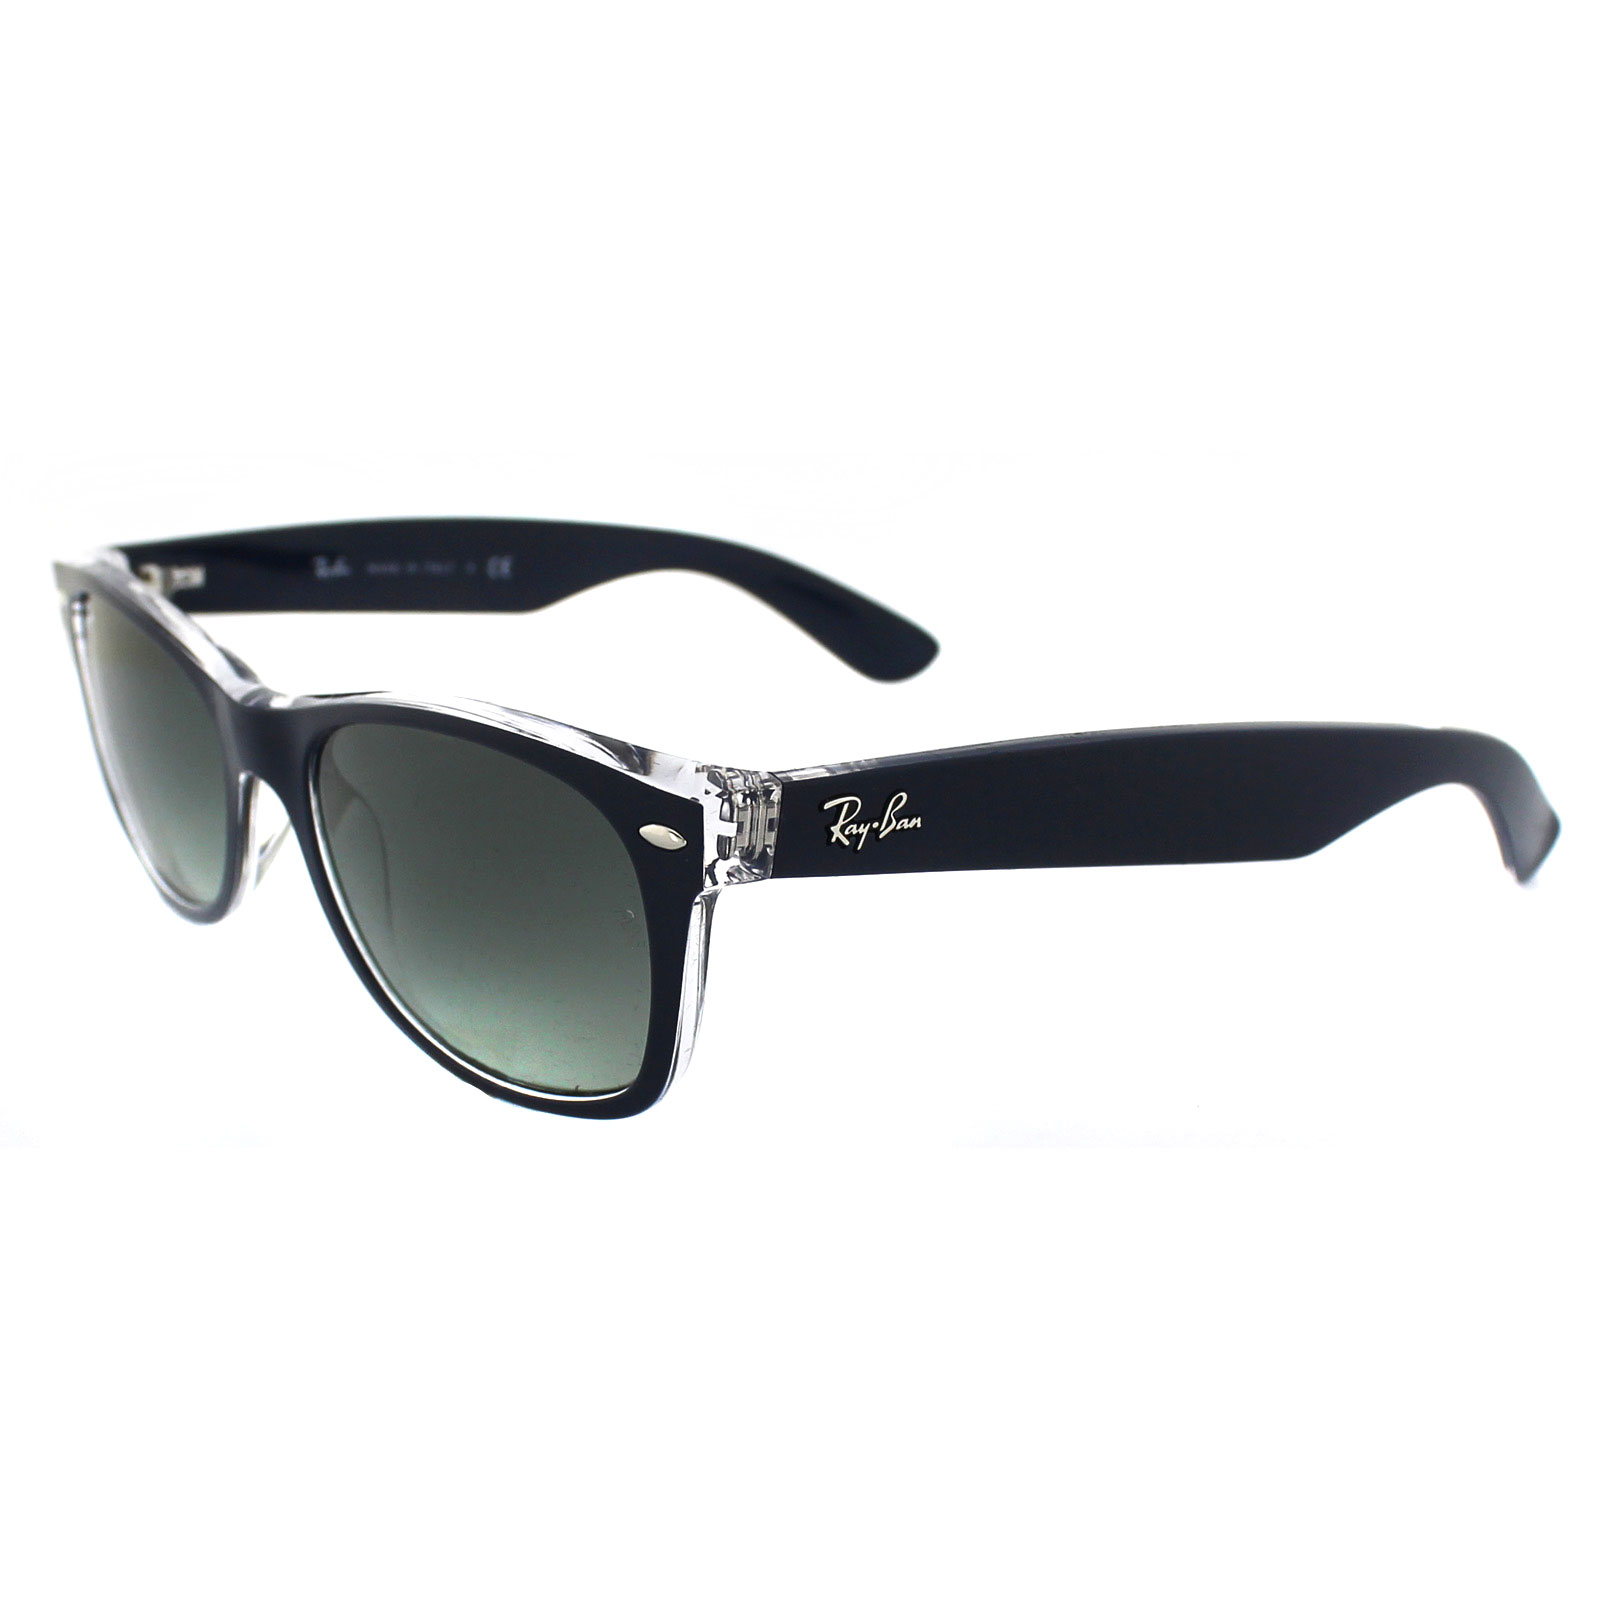 fa9e8b2f109 Sentinel Ray-Ban Sunglasses New Wayfarer 2132 605371 Blue Transparent Grey  Gradient Small